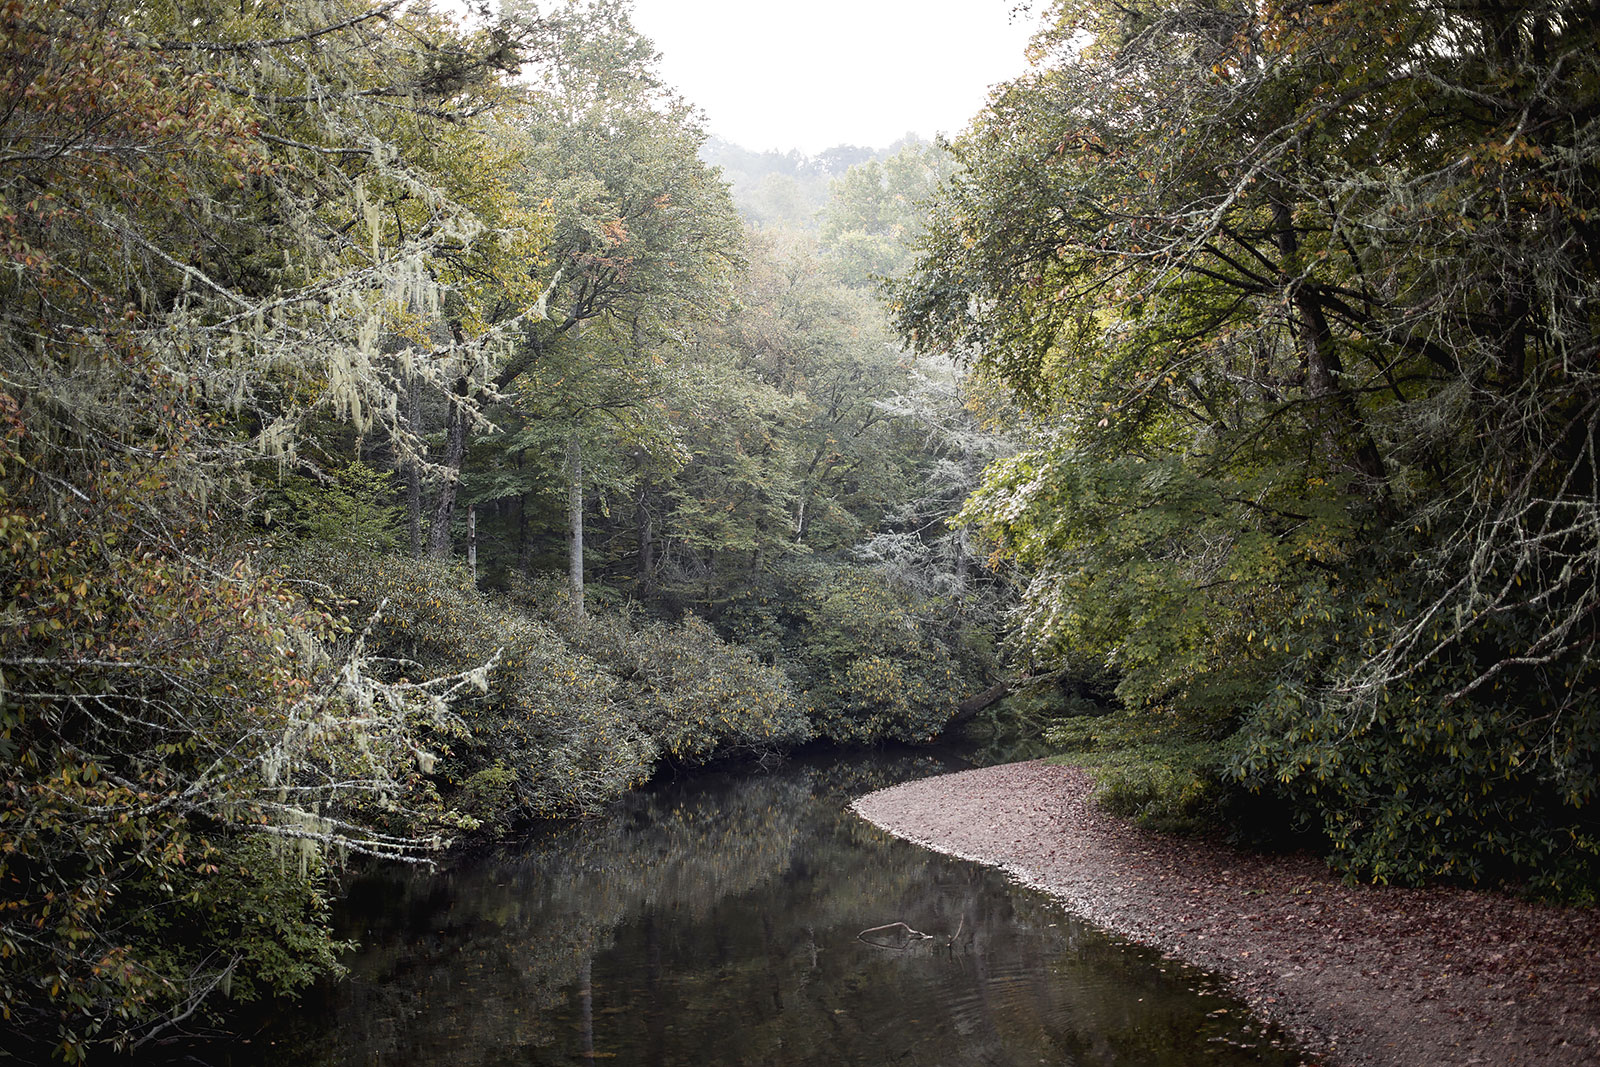 """The Nantahala River flows near her headwaters in what is now known as Standing Indian Campground in the Nantahala National Forest. Old-timers remember it as White Oak Bottoms where a 1927 logging camp once grew. Old growth white oaks are clear-cut by the Ritter Lumber Company and milled in nearby Rainbow Springs to the tune of 50,000 board feet a day. """"By 1940 … his ( W.M. Ritter ) company had already manufactured and sold three billion board feet of lumber — enough to comprise a solid train over 2,000 miles.""""  My pap-paw Pete Armes, the remaining living sibling of 13 brothers and sisters, remembers butchering hogs with his father and selling the cuts of pork from a mule-drawn wagon through the community that grew up around White Oak Bottoms. He can still remember the railroad tracks Ritter had put down to transport the lumber to the mill."""